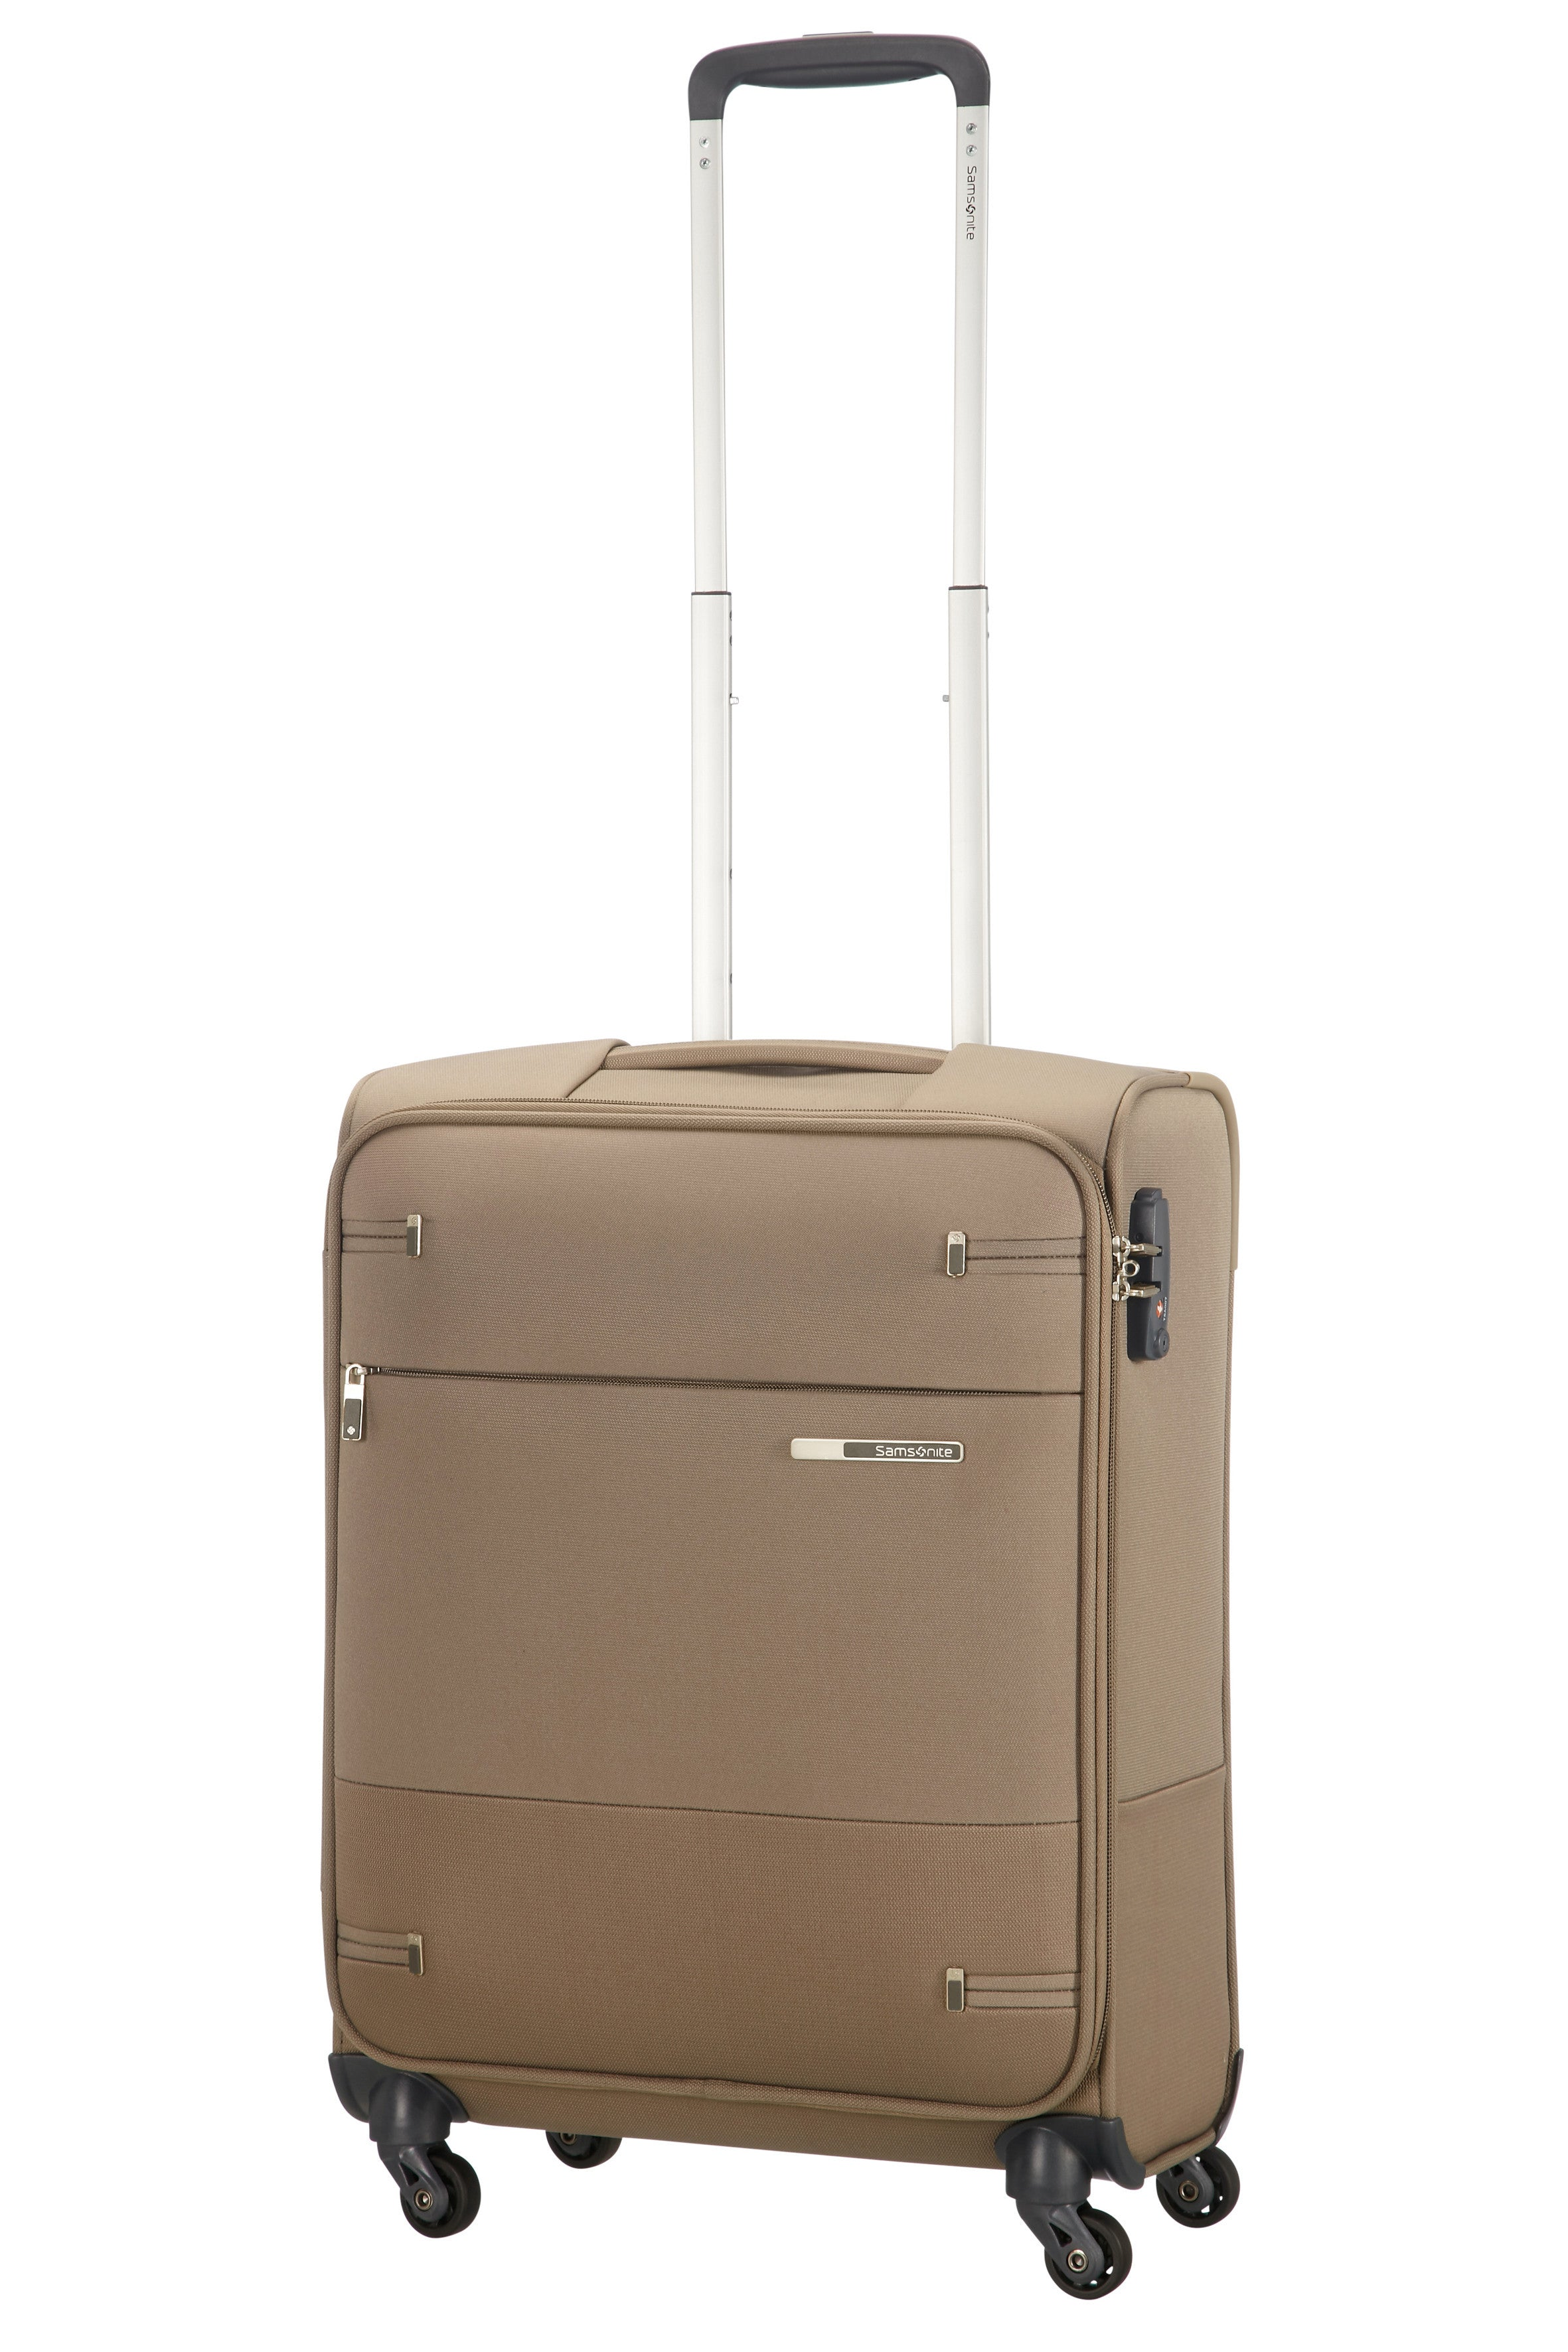 Samsonite Base Boost Spinner 55cm Lengte 40cm Walnut